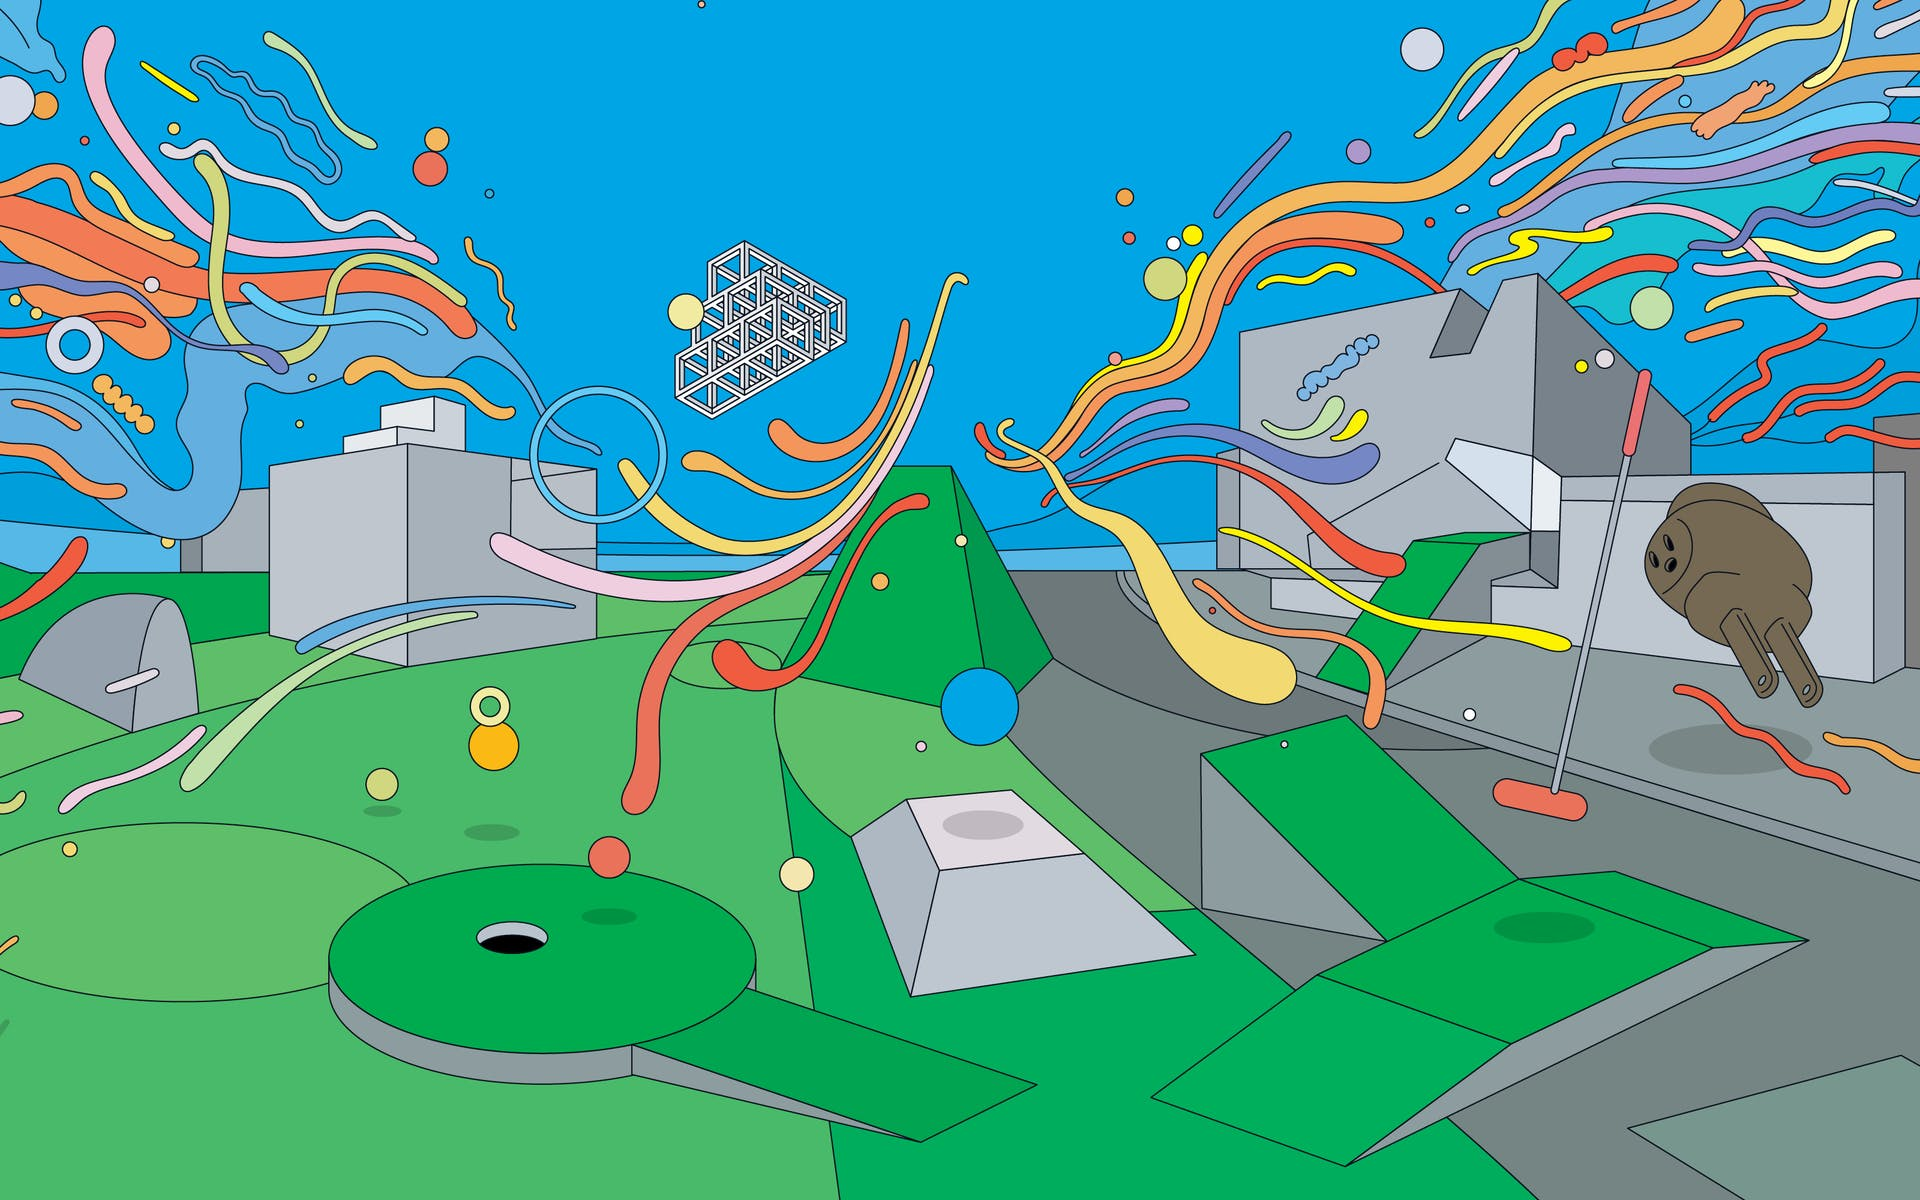 Colorful illustration of Walker building with dozens of floating multicolored balloons and shapes and mini golf course in front